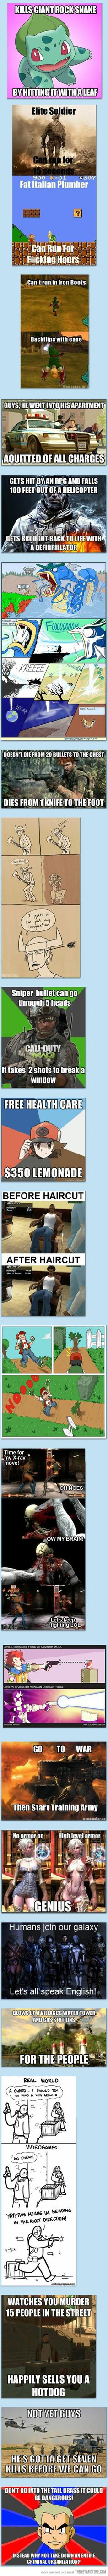 25 Video Game Logic Things That Will Make You Laugh Out Loud